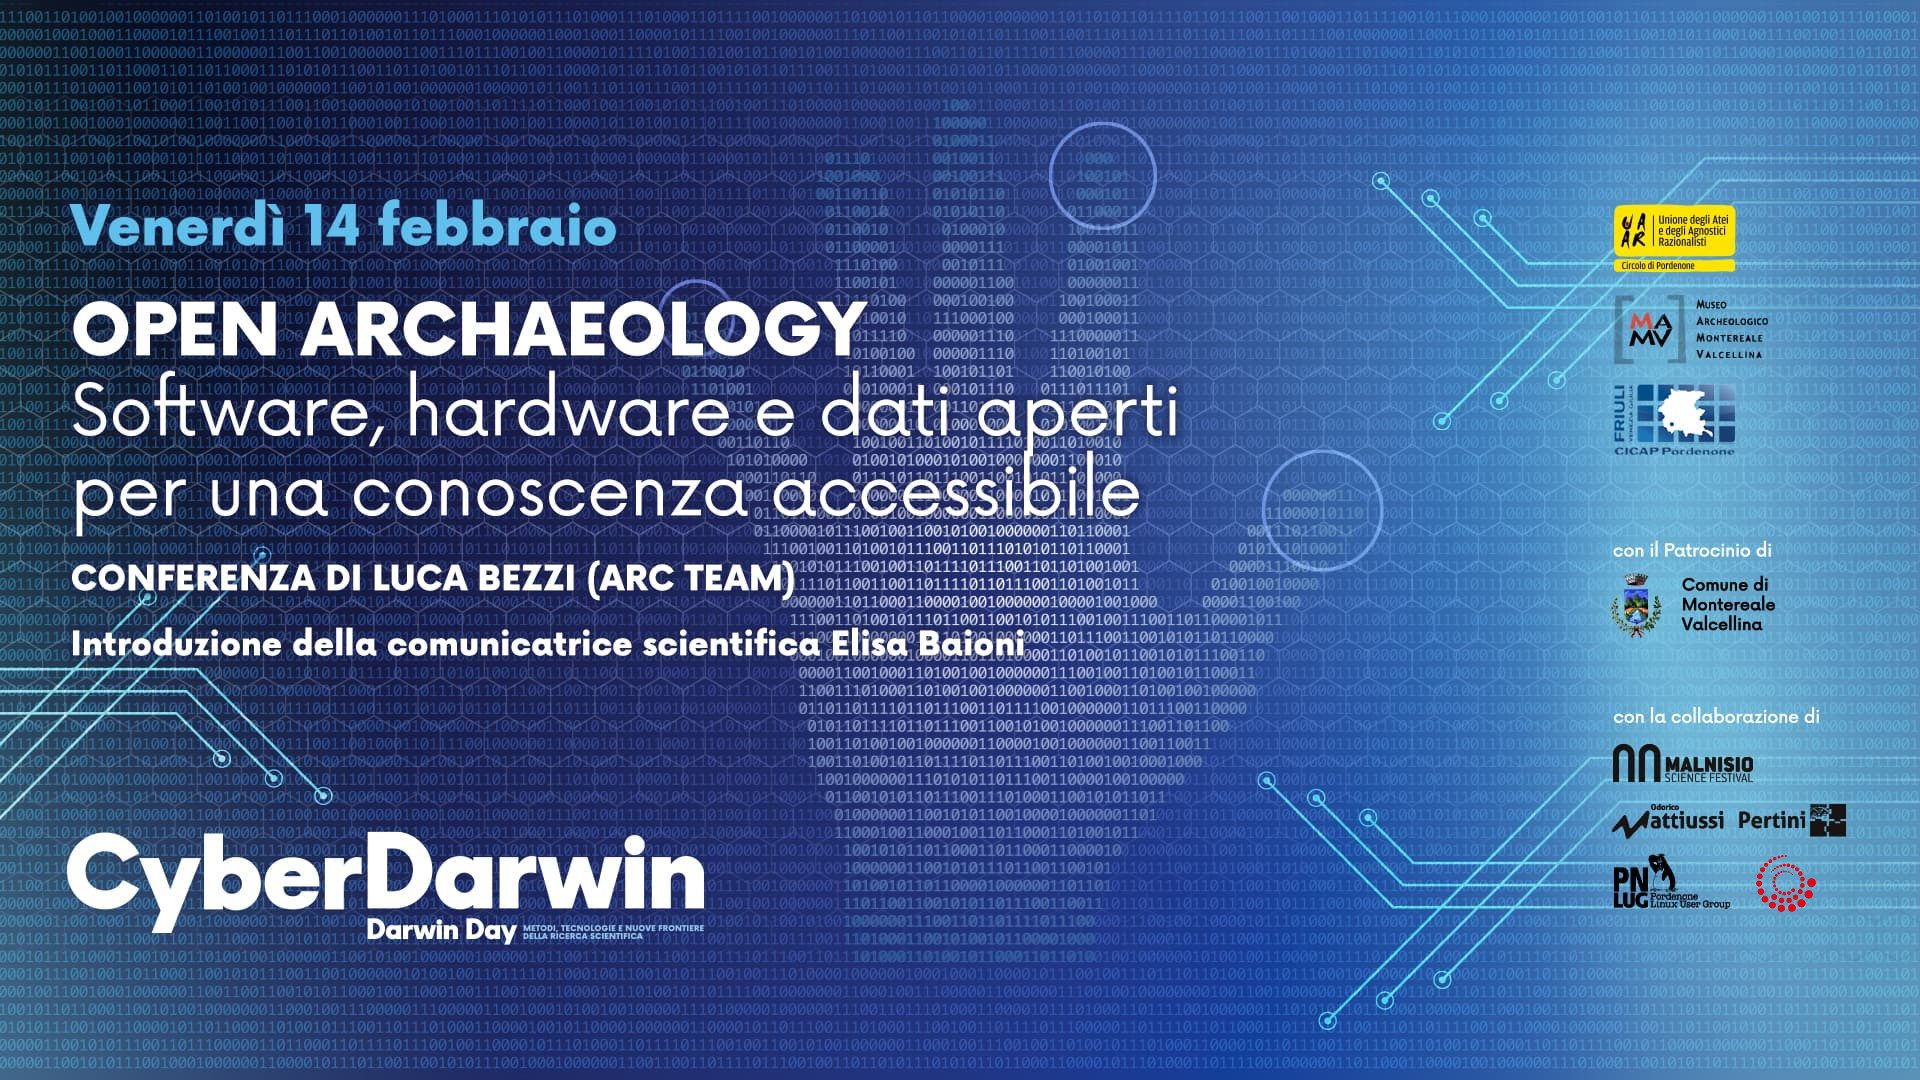 Open Archaeology - Software, hardware e dati aperti per una conoscenza accessibile